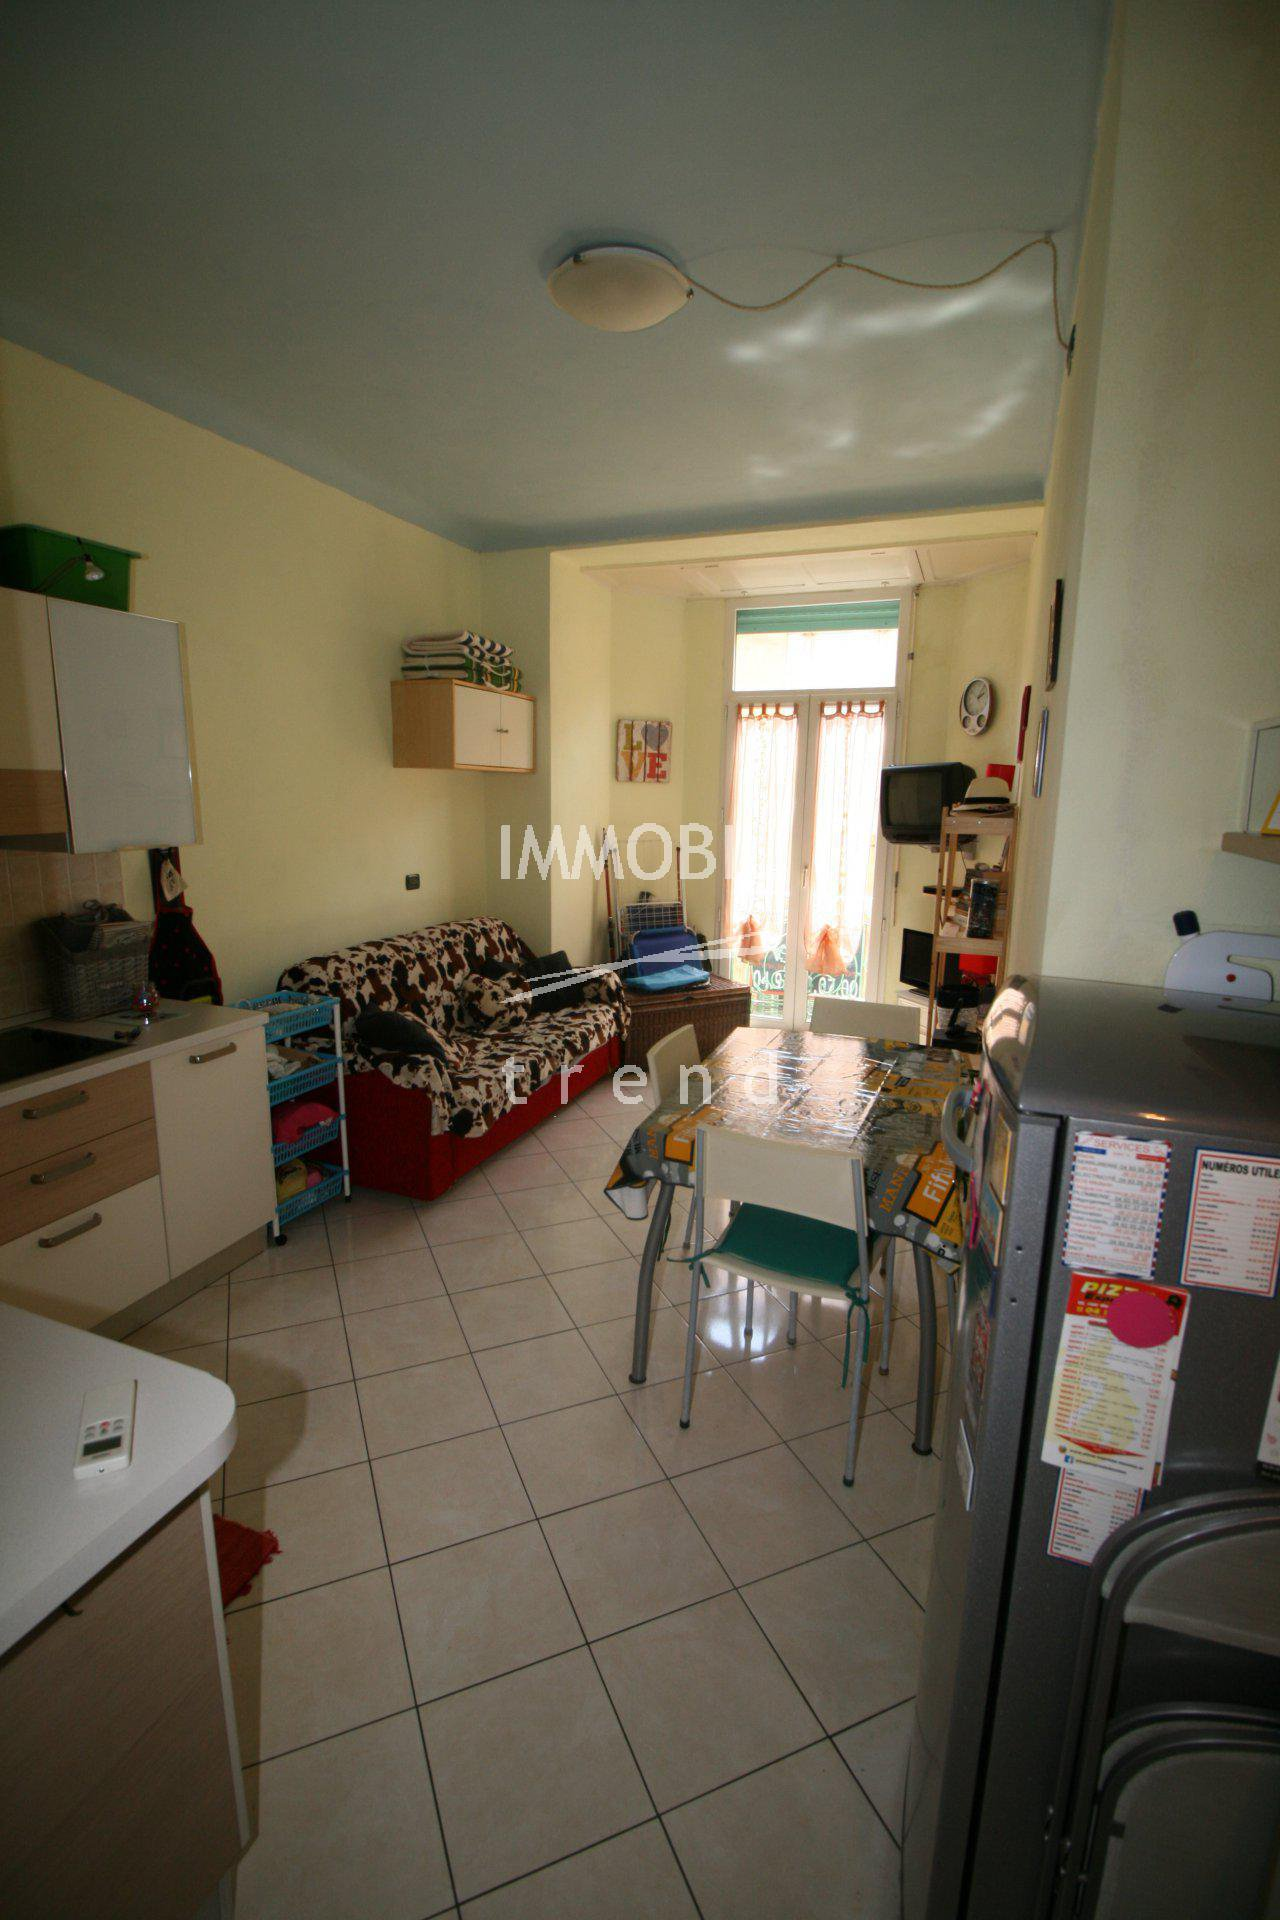 Exclusivity For Sale One Room Flat In Menton Center